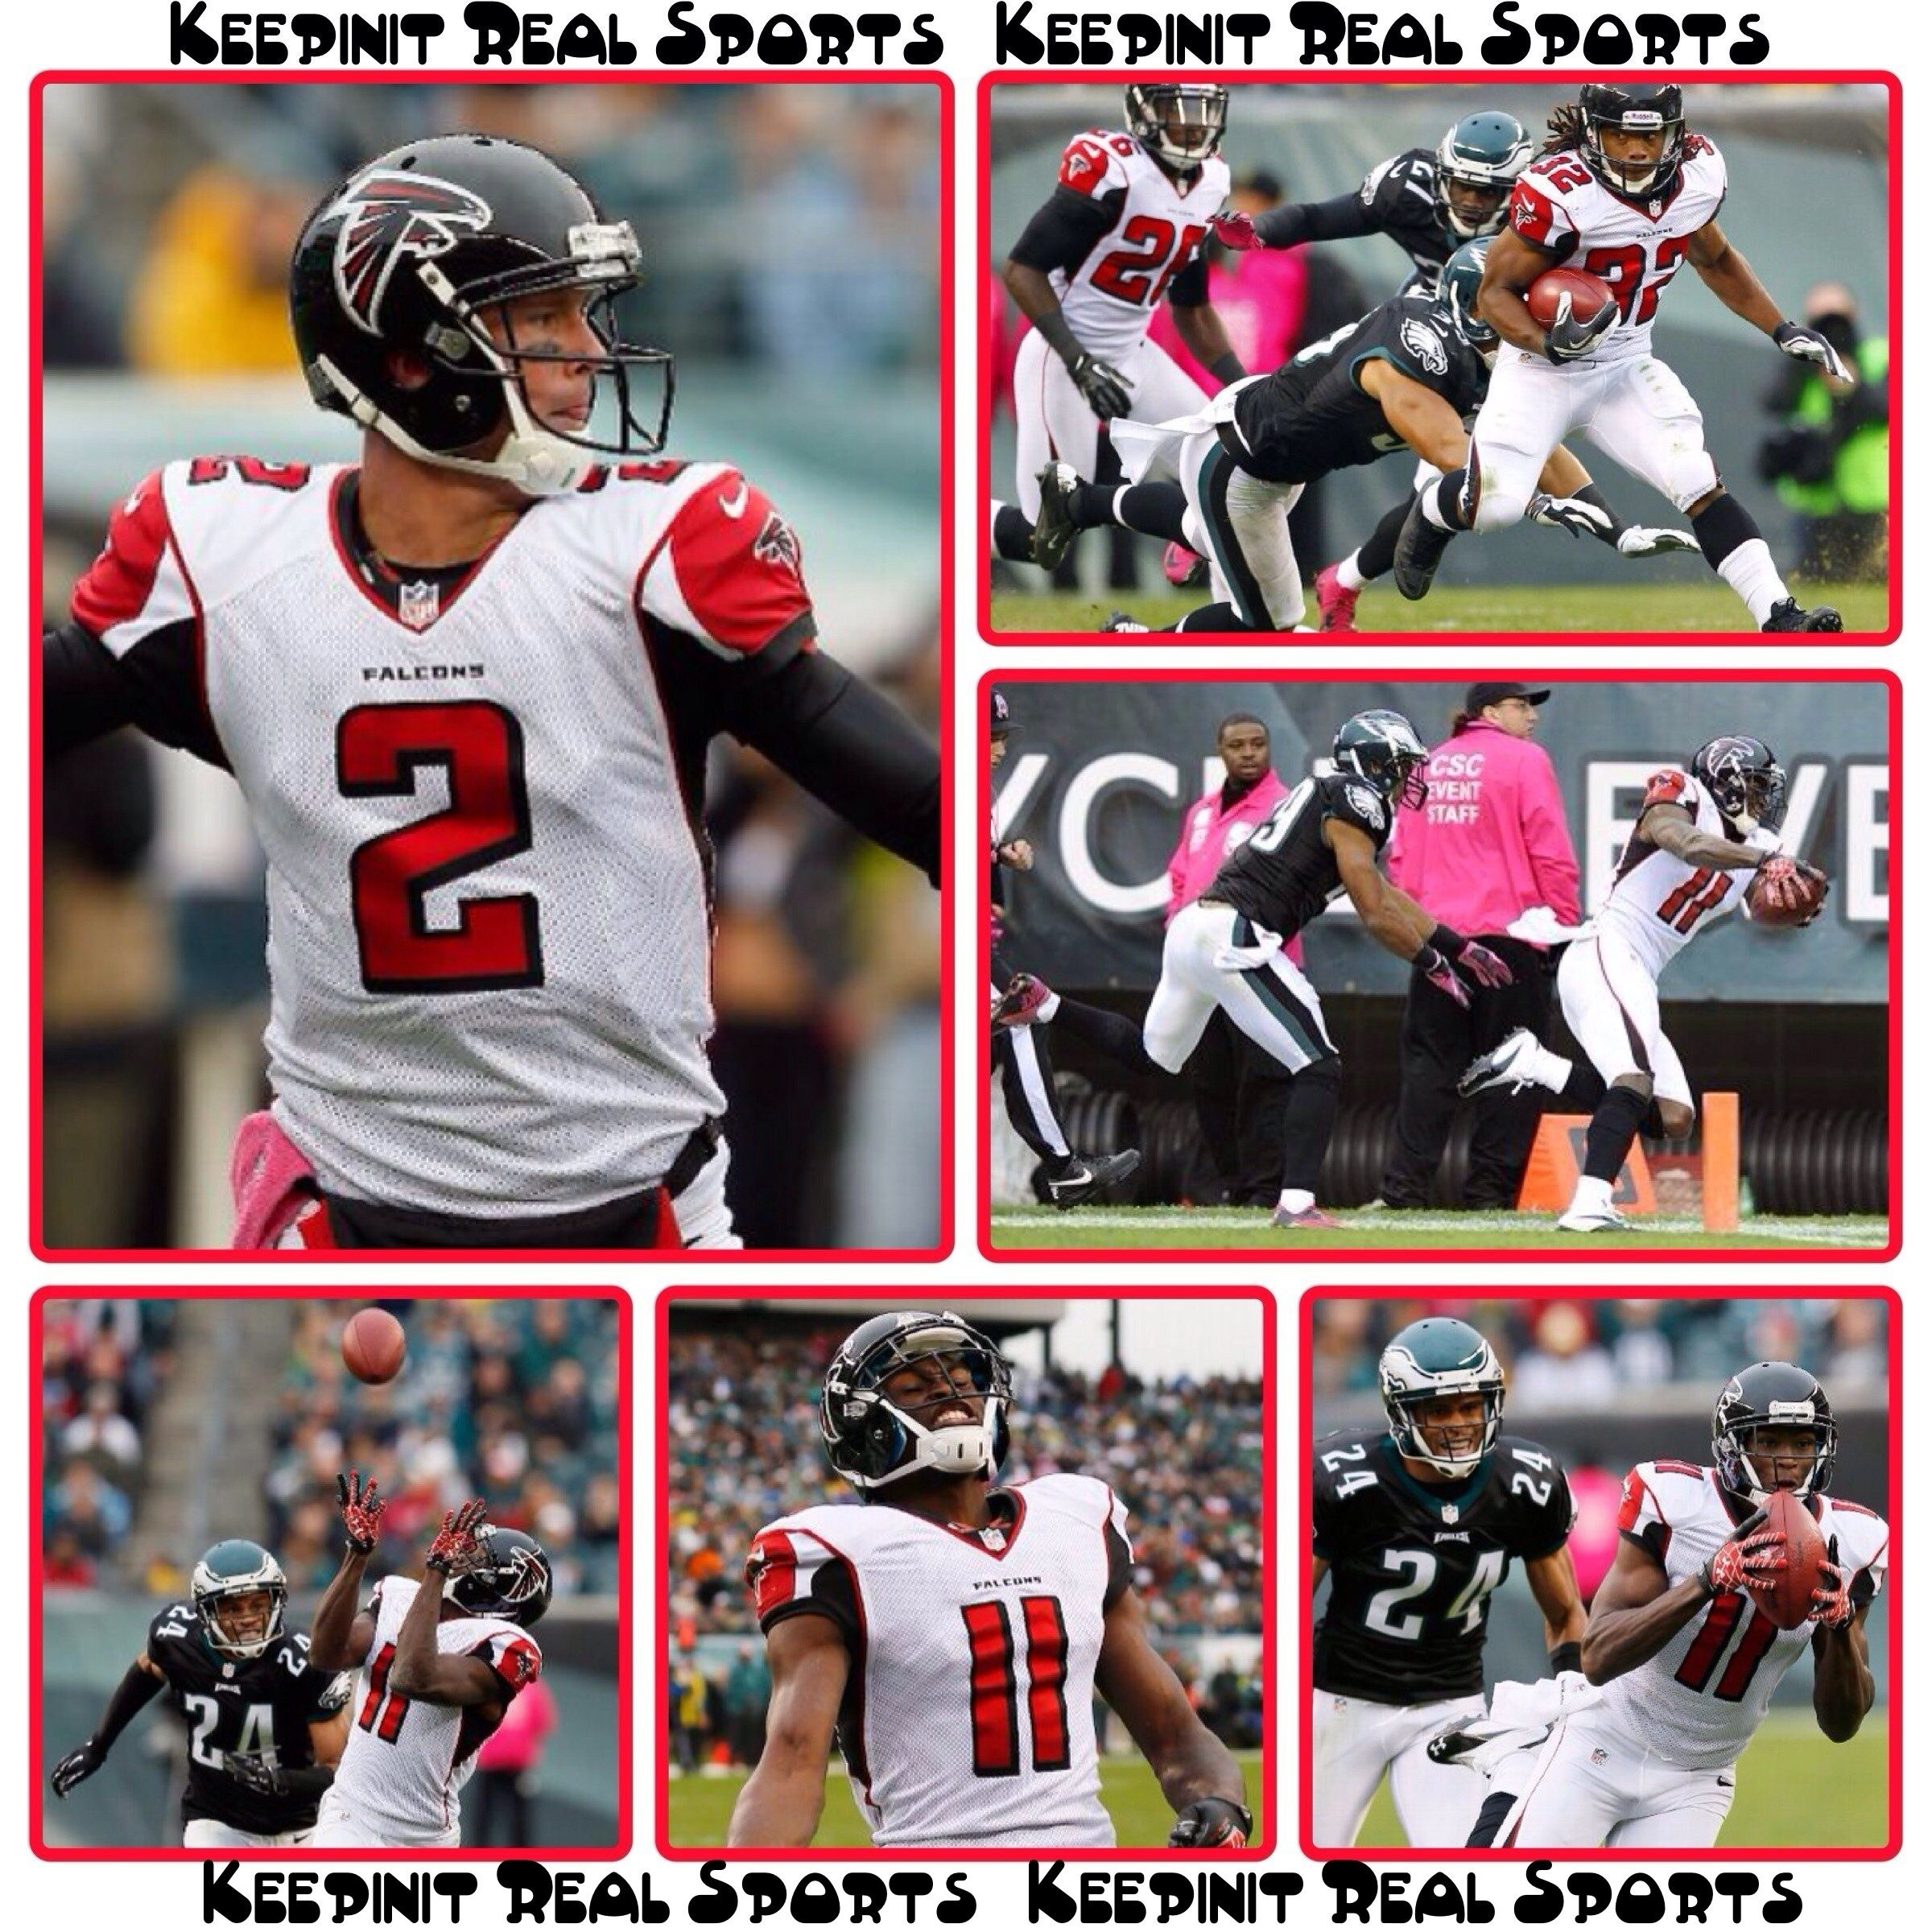 Nfl Falcons Vs Eagles Falcons 30 7 0 4 0 Away Eagles 17 3 4 2 2 Home Final Top Performers Passing M Ryan Atl 262 Yds 3 Sports Nfl Football